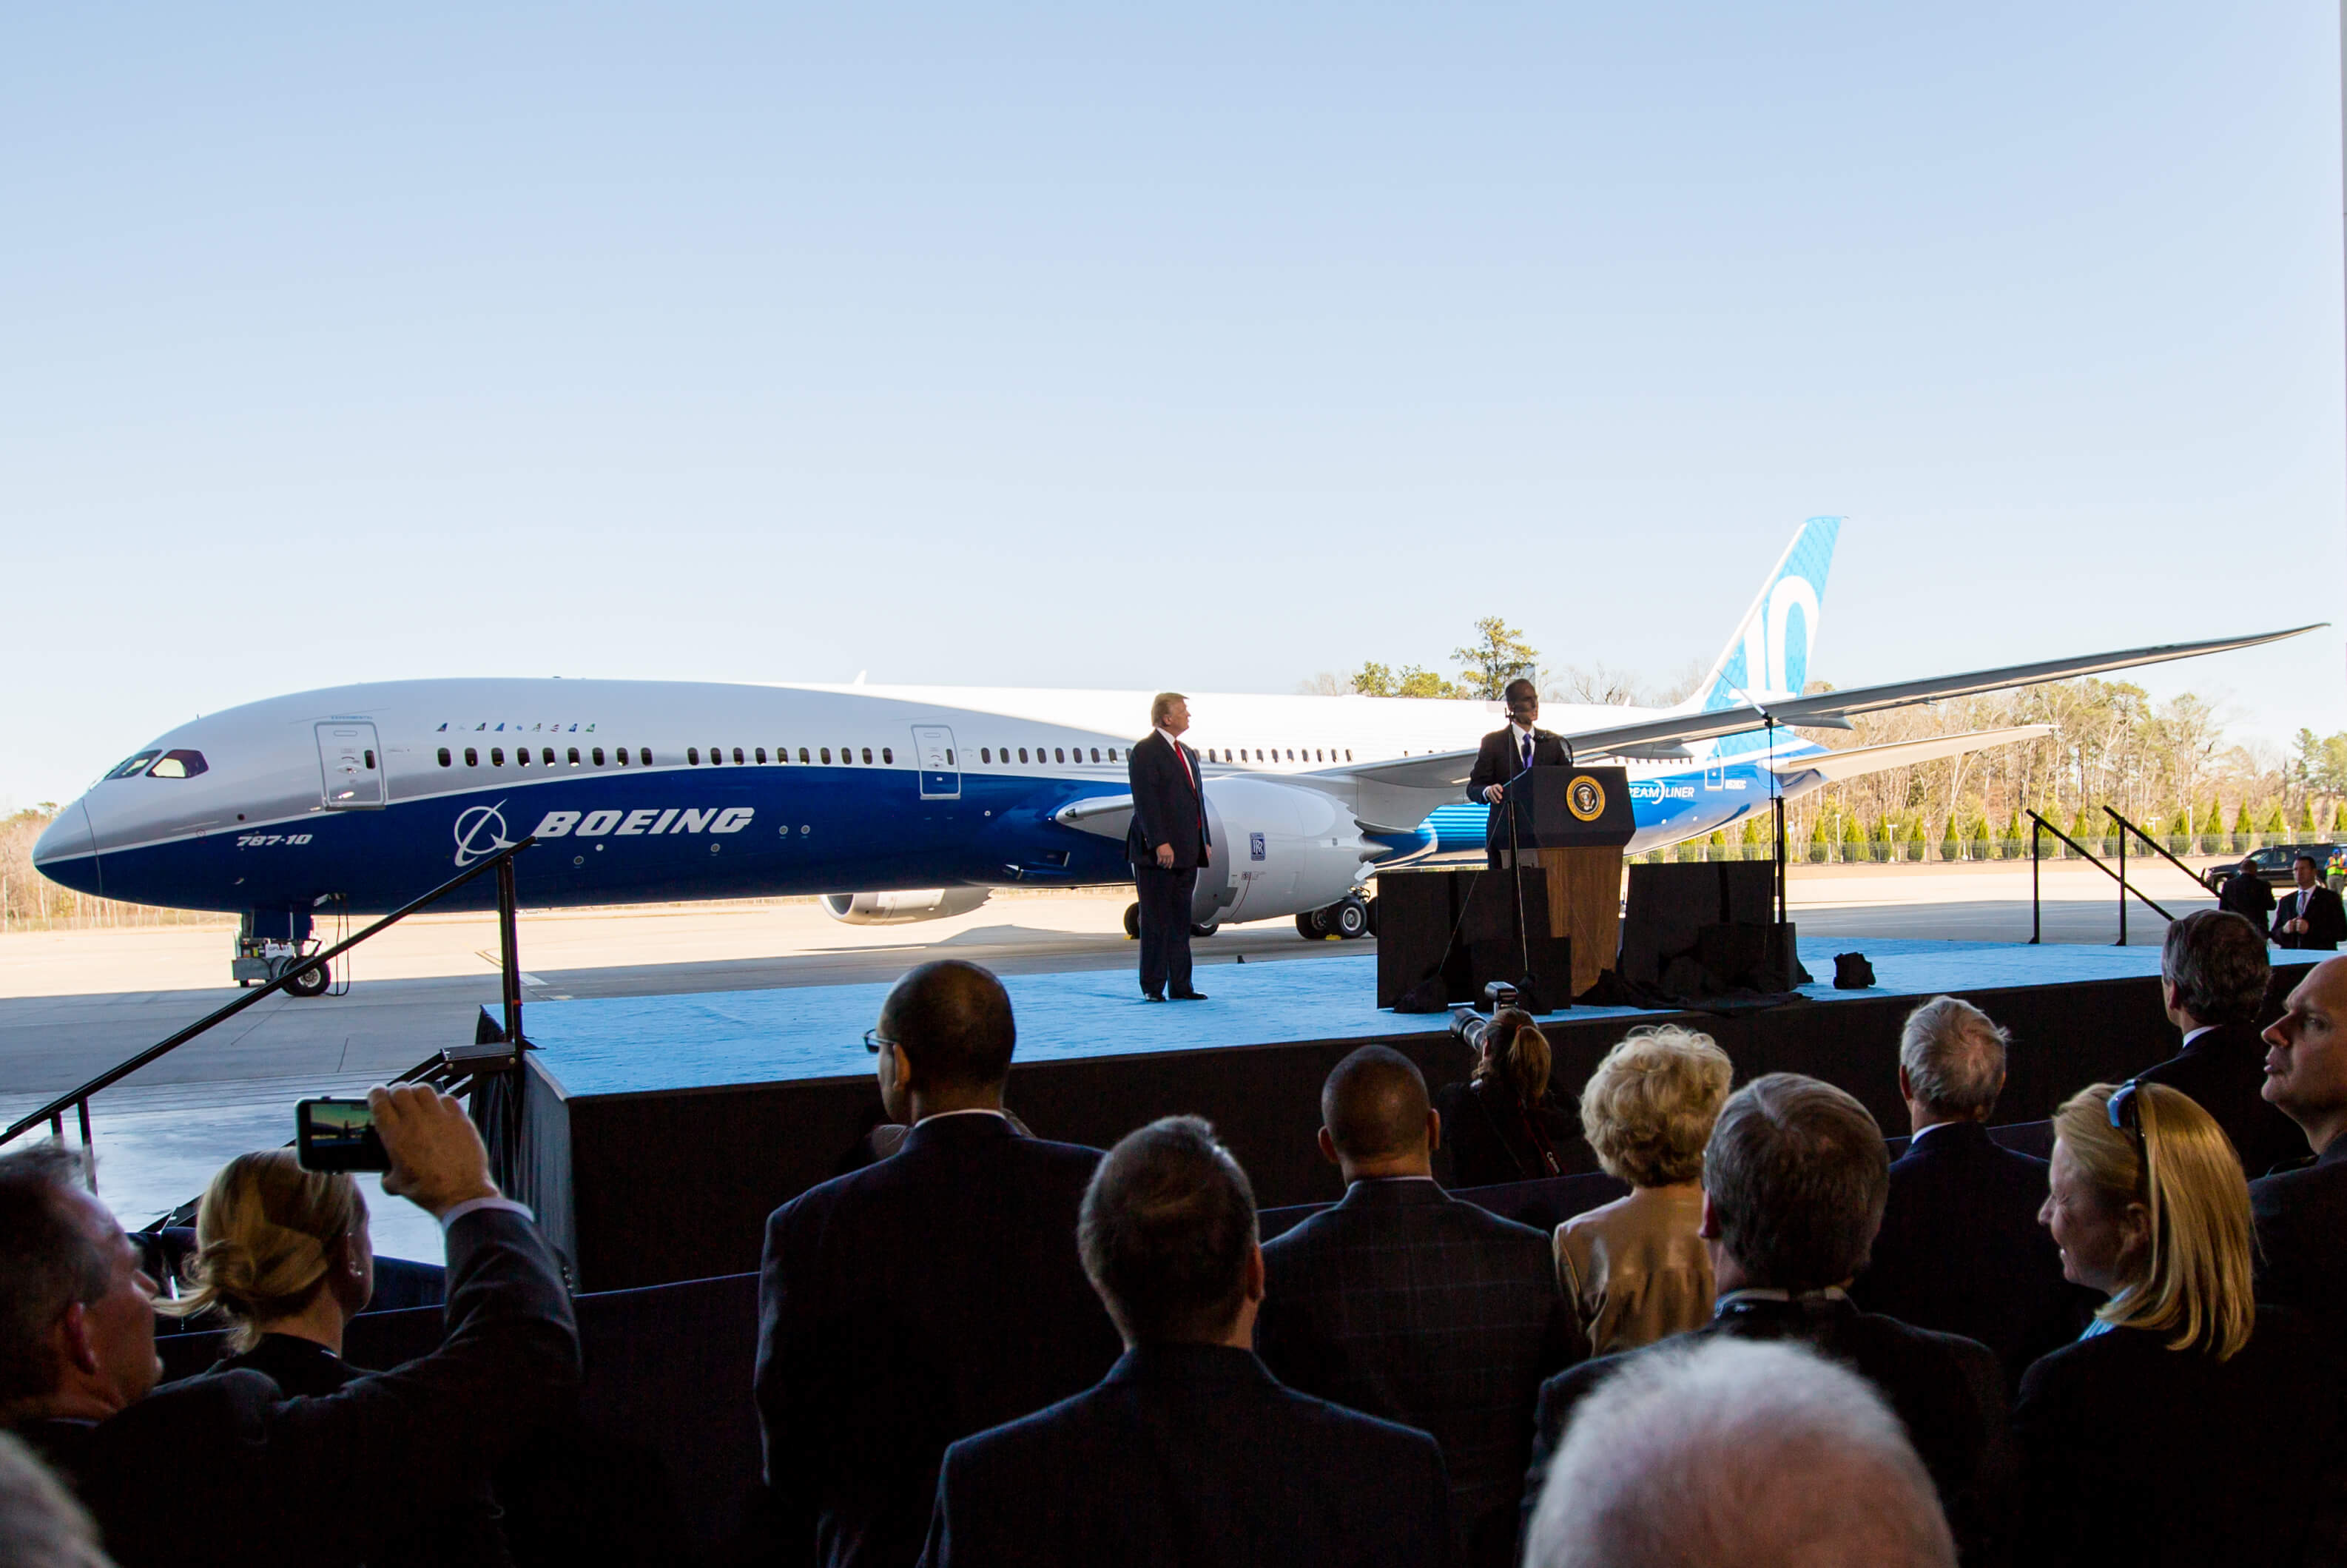 Boeing Under Fire Over The Safety Of The 787 Dreamliner